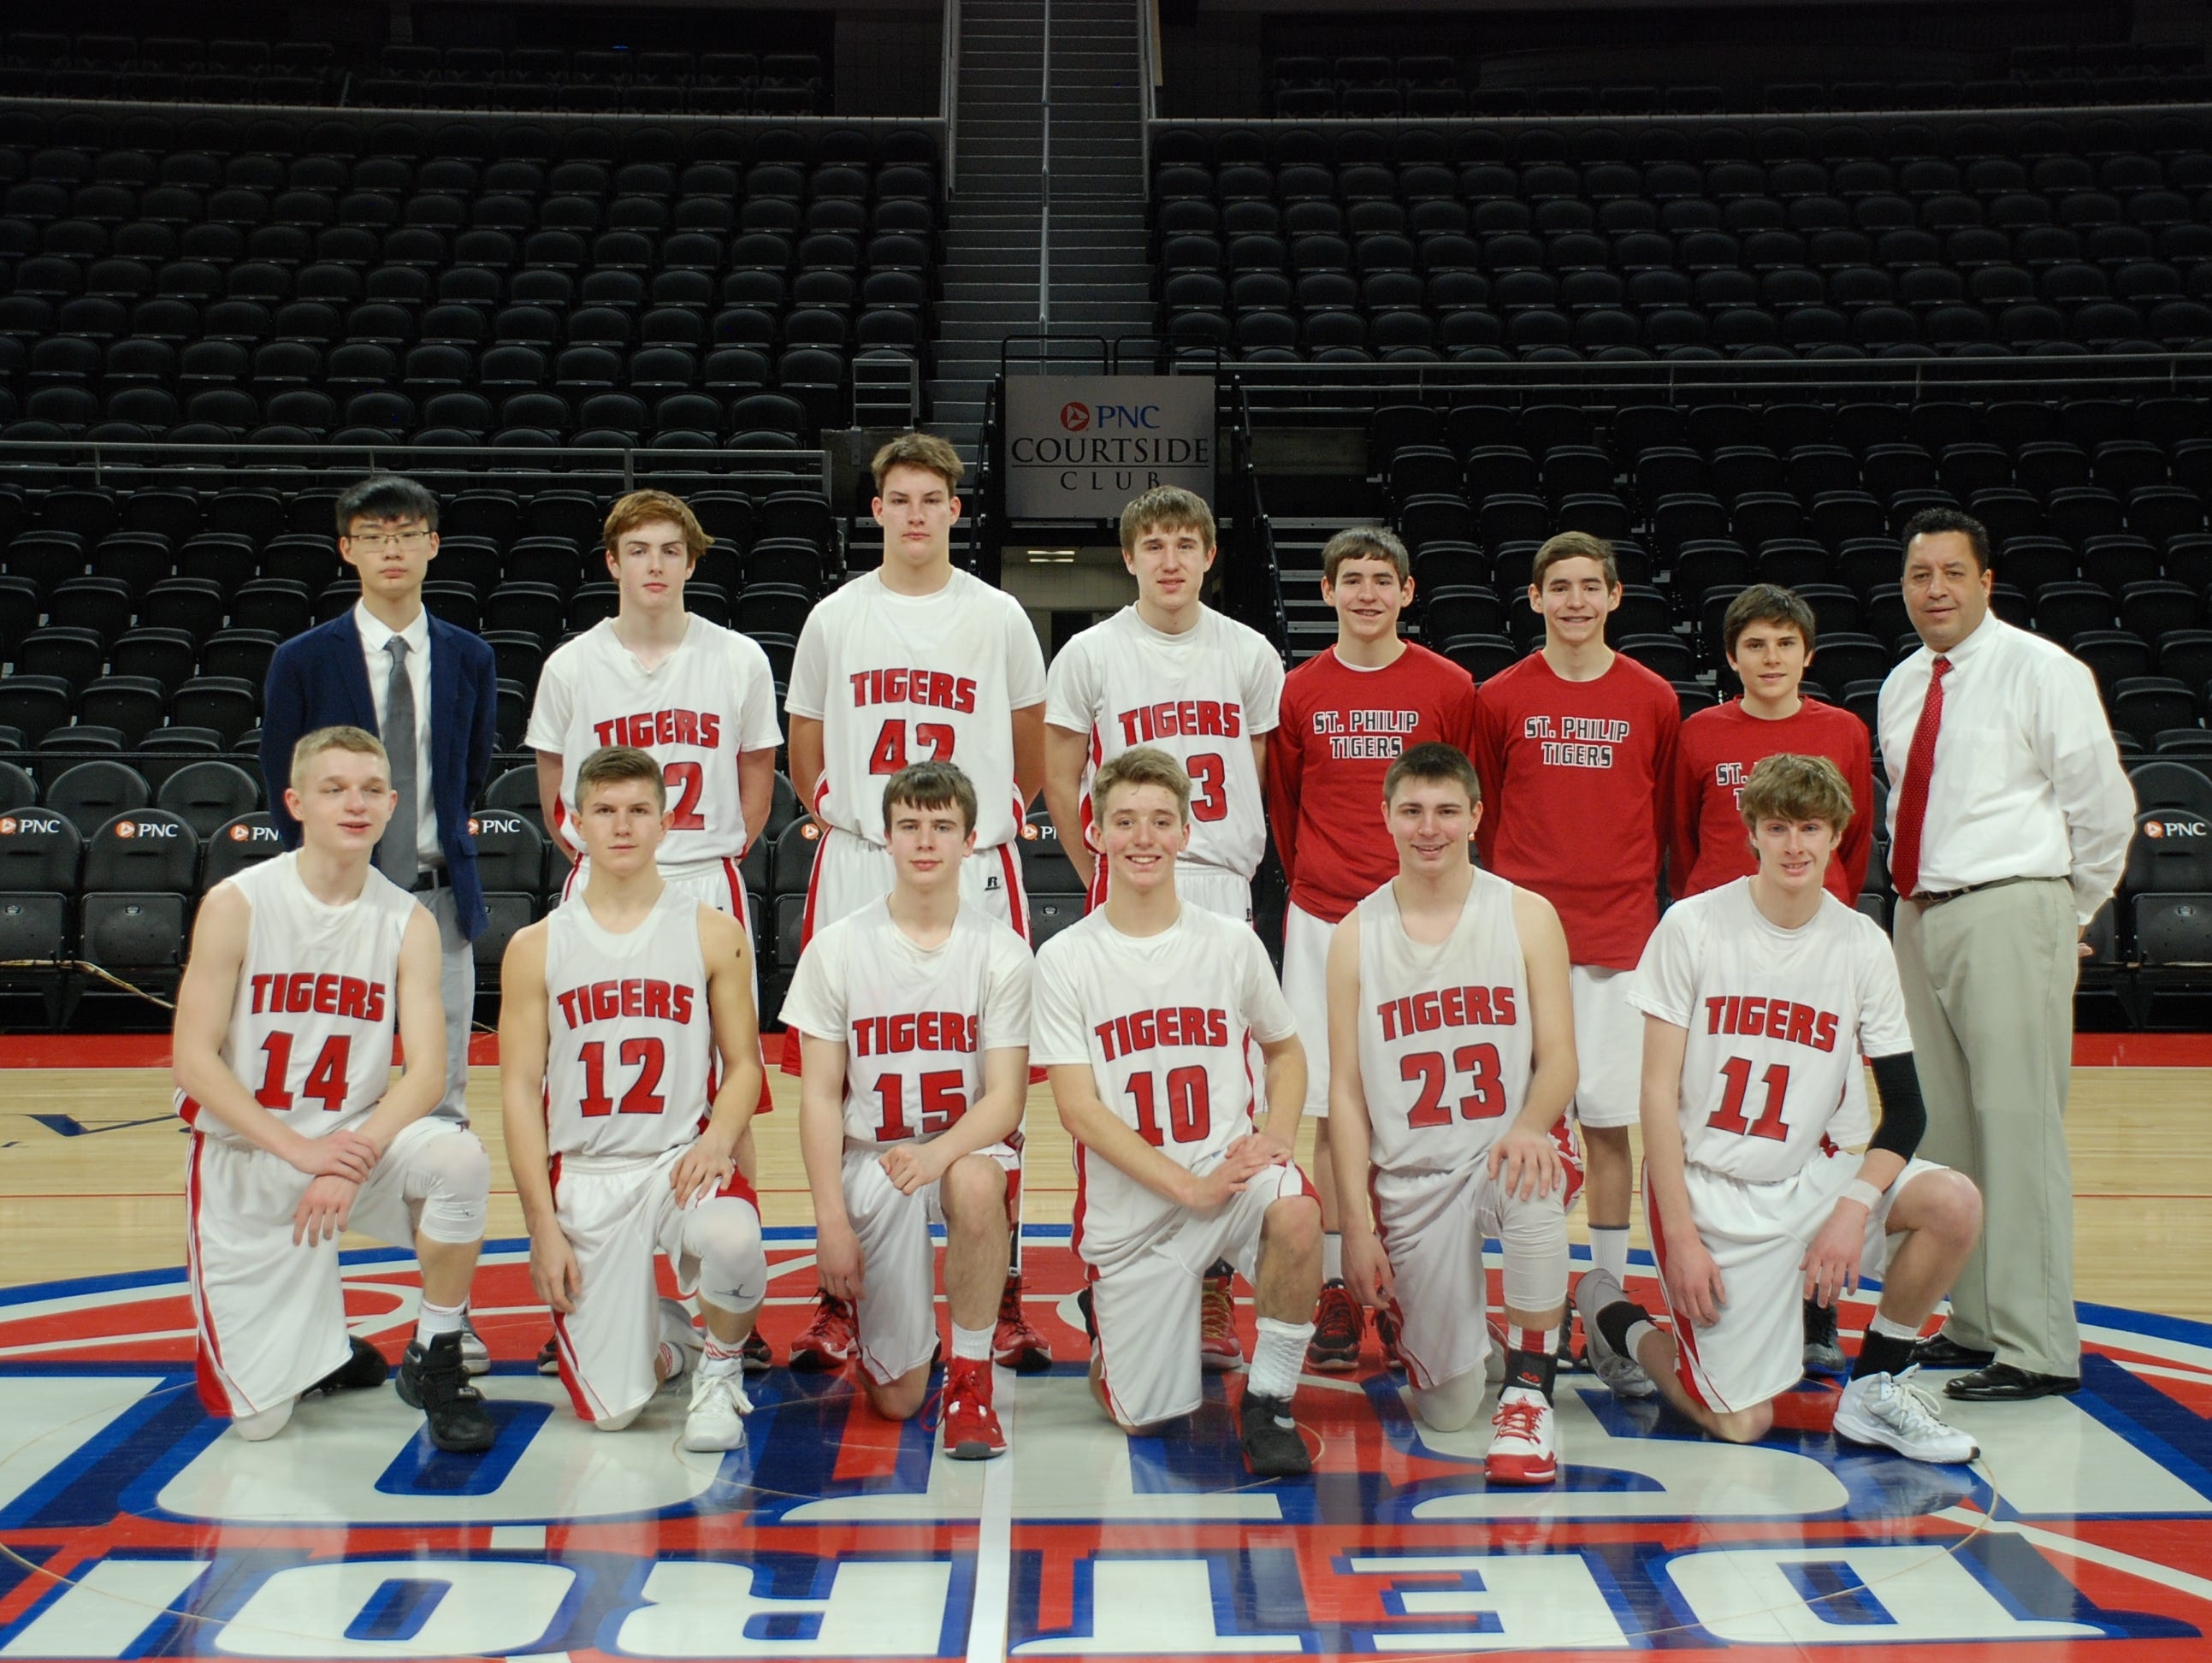 Members of the St. Philip varsity basketball team pose at center court after playing Bellevue at The Palace of Auburn Hills on Saturday.